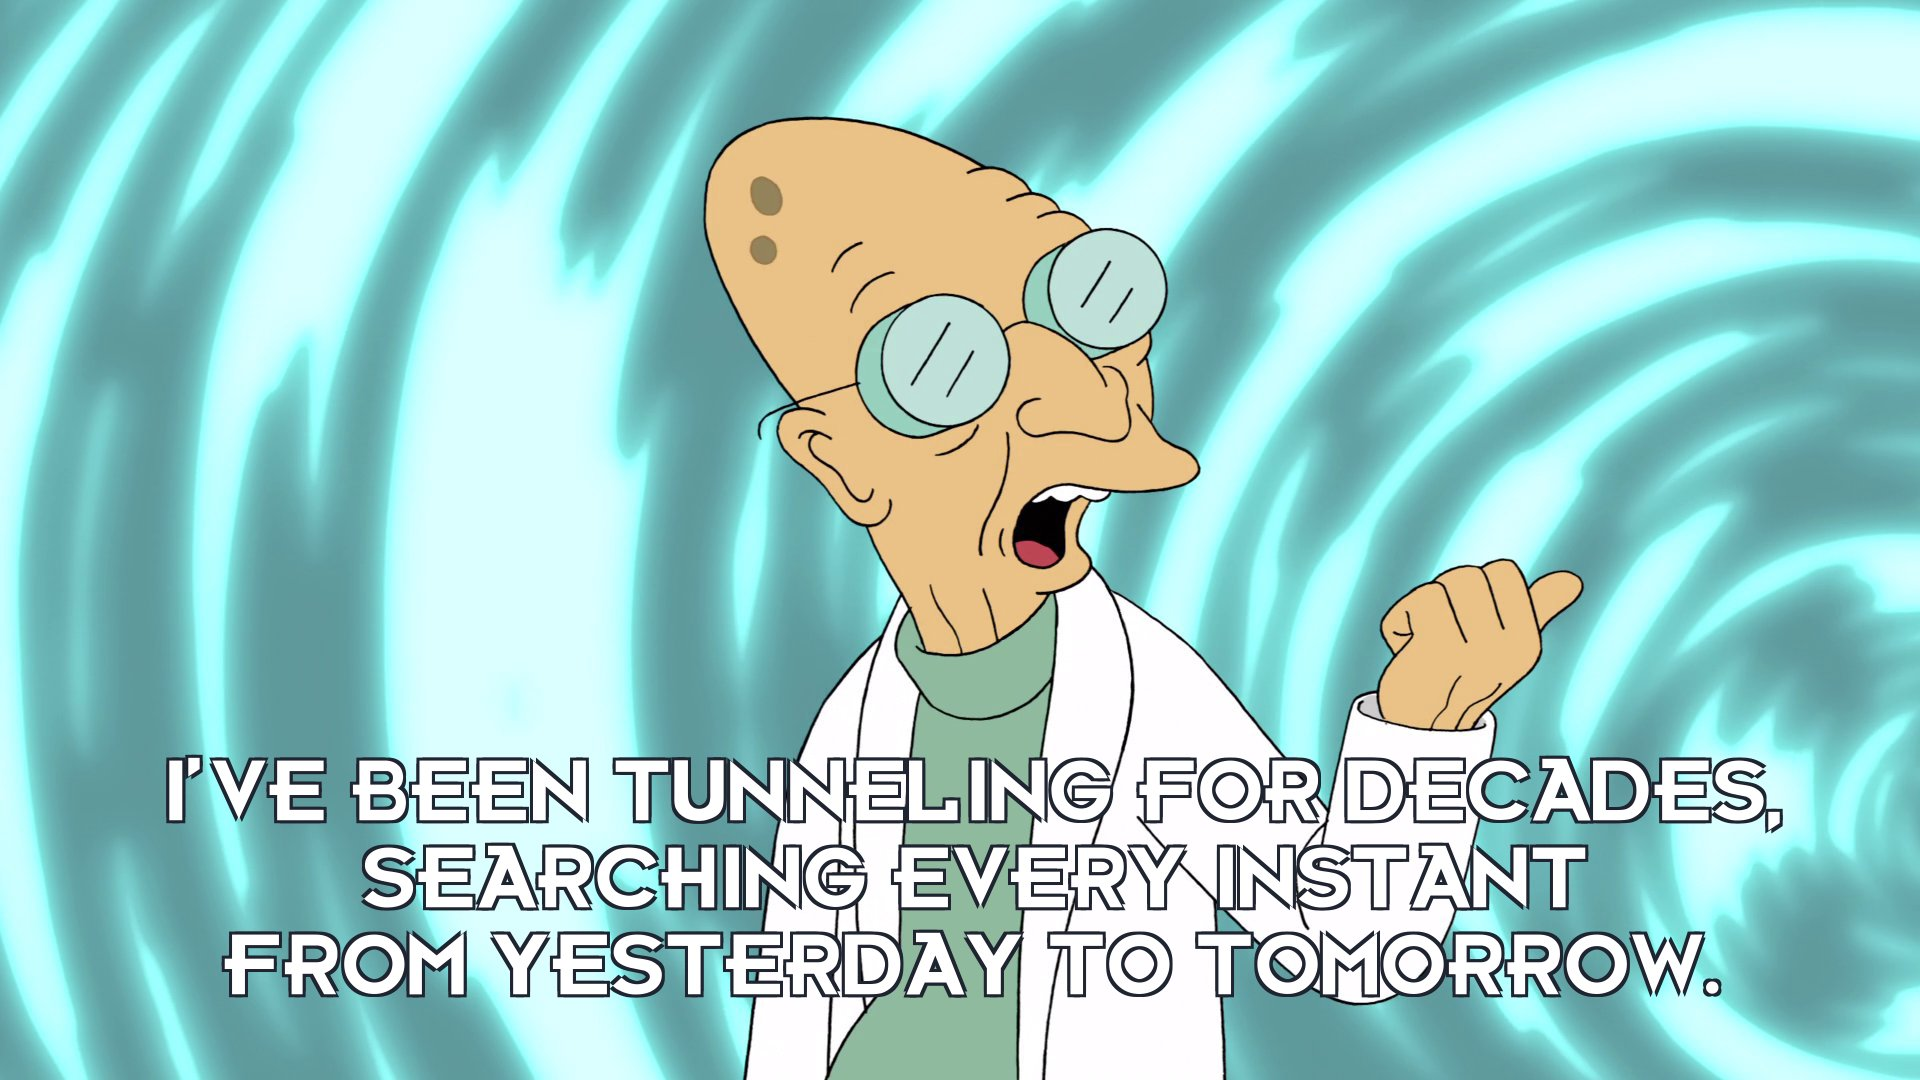 Prof Hubert J Farnsworth: I've been tunneling for decades, searching every instant from yesterday to tomorrow.